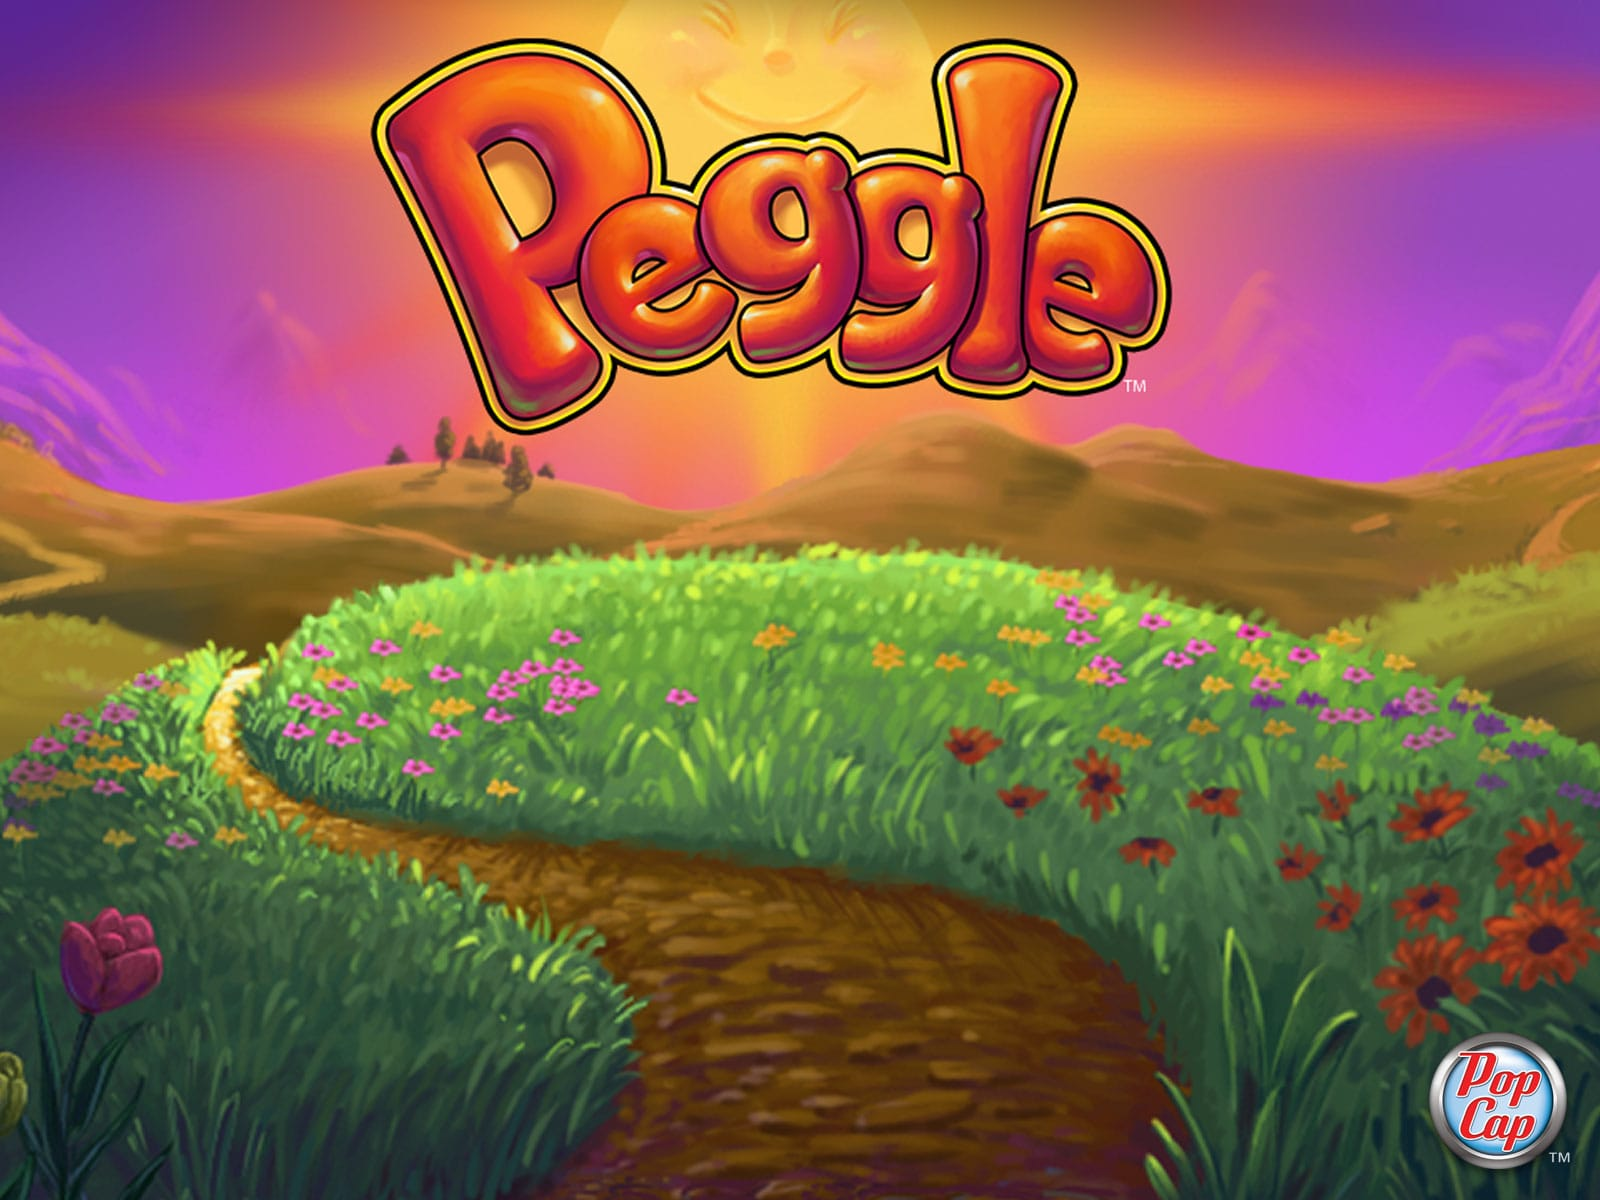 Peggle 2 Desktop wallpaper